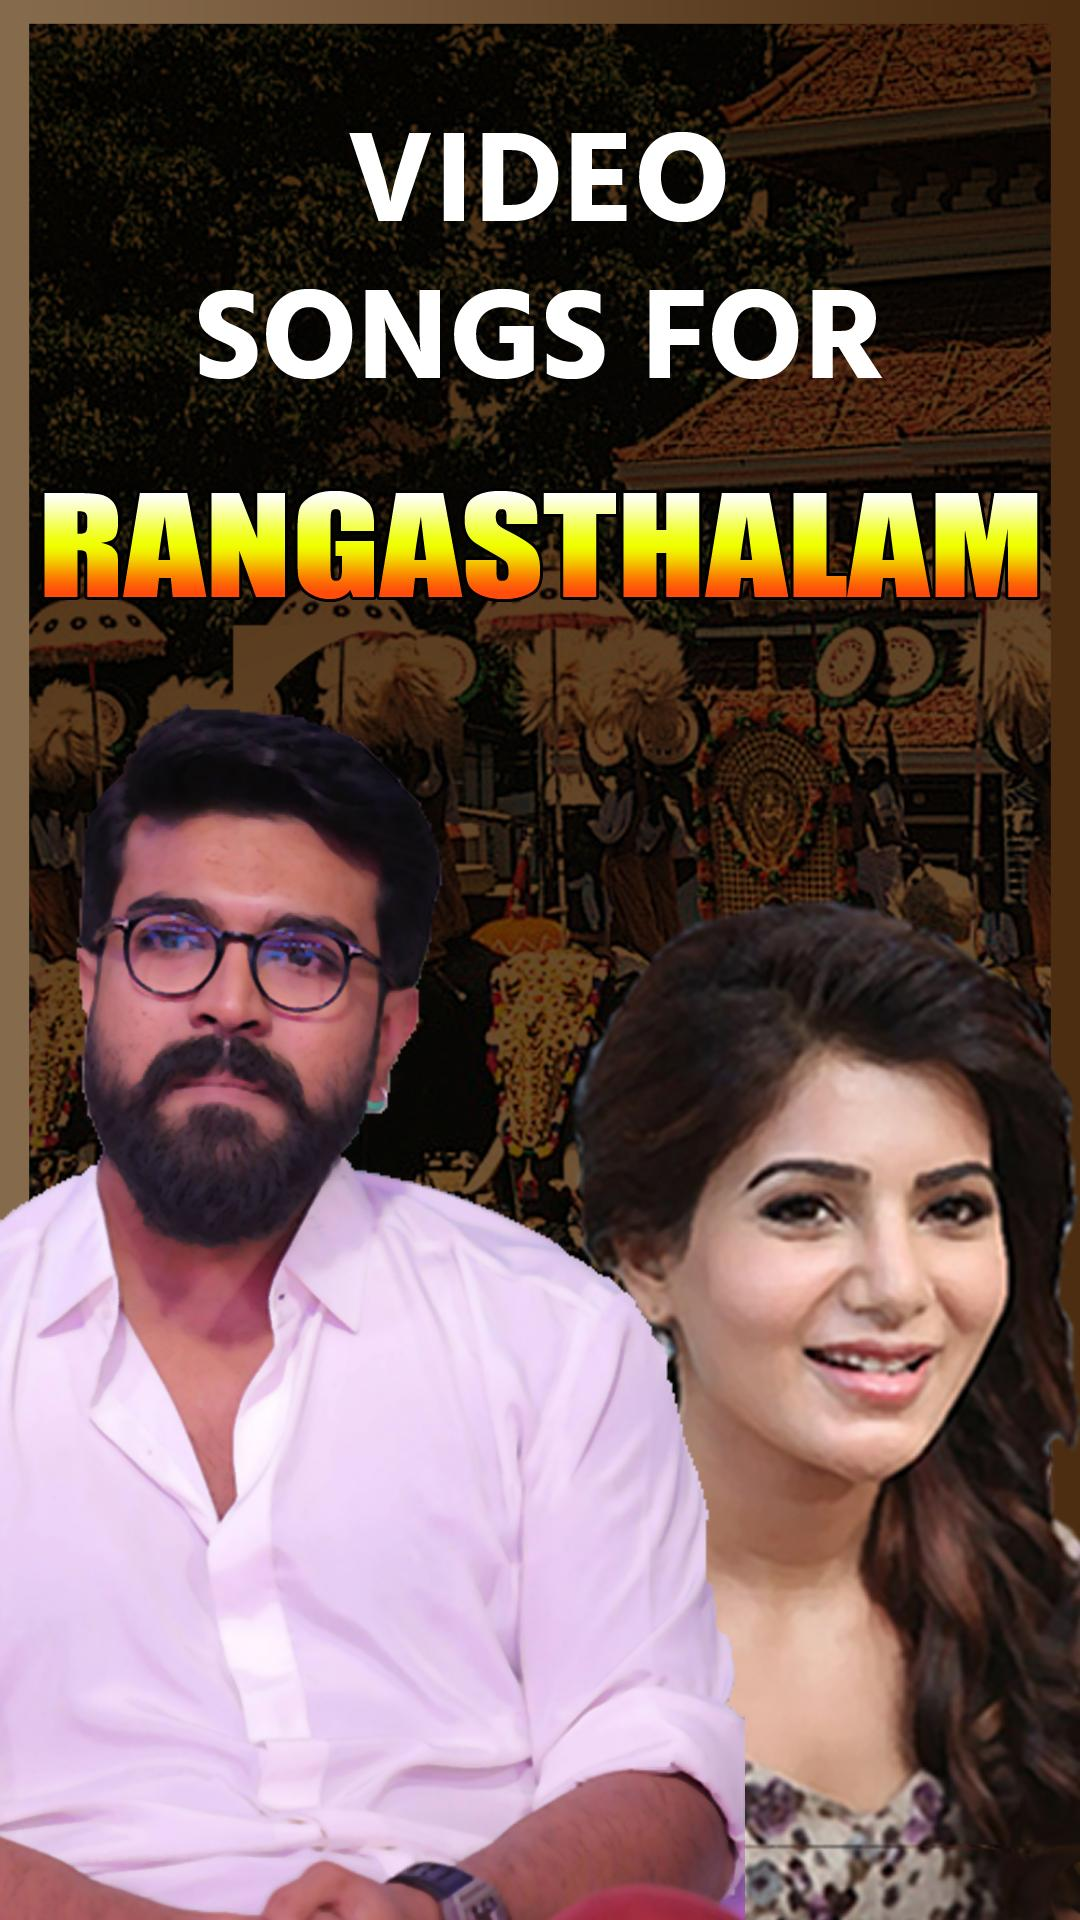 Video songs for Rangasthalam for Android - APK Download